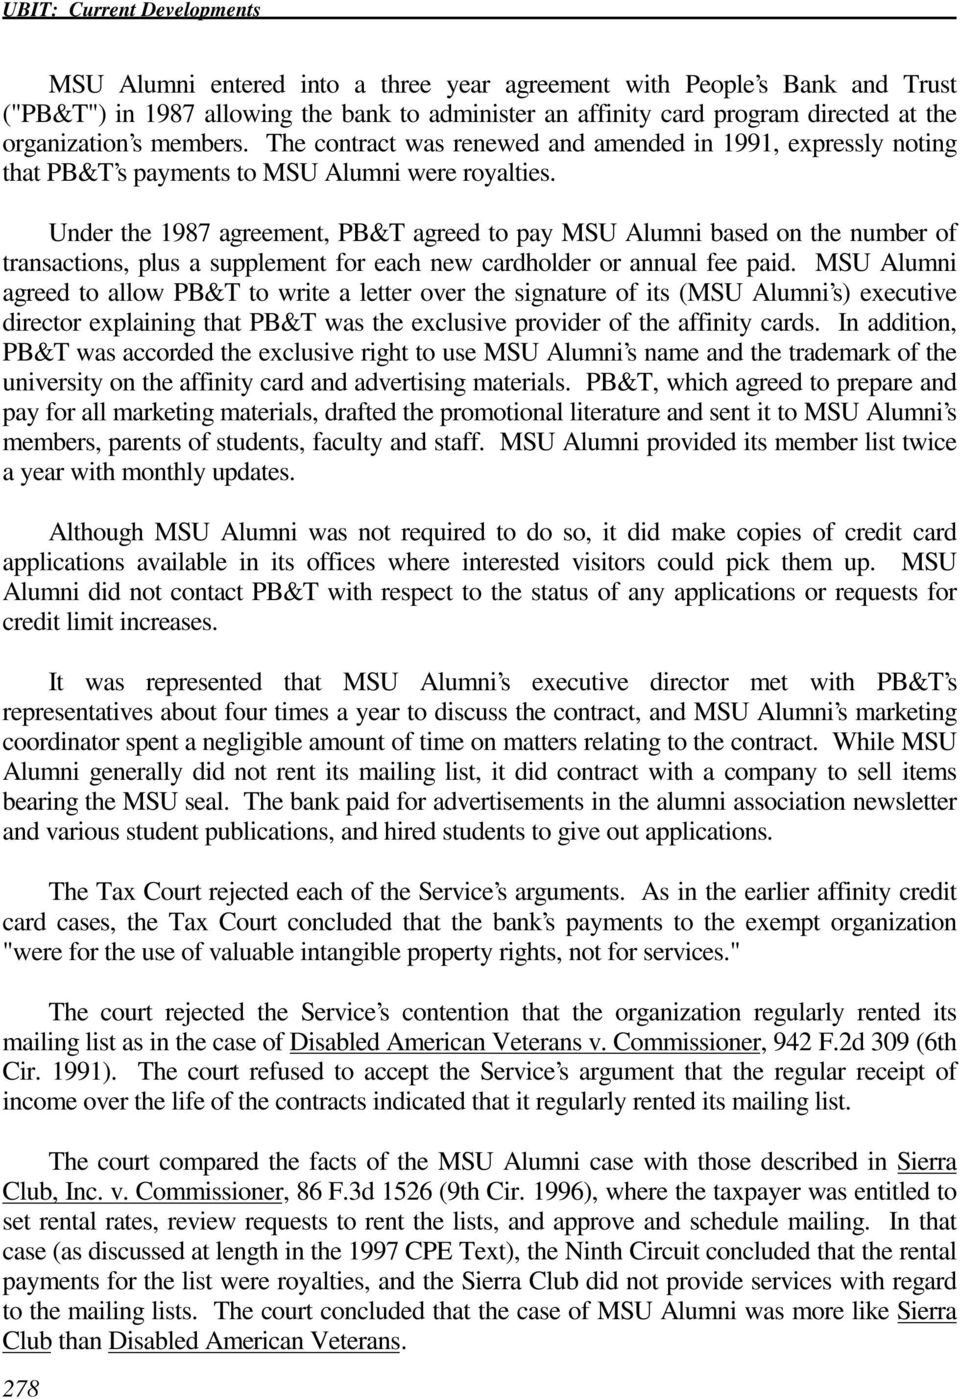 Under the 1987 agreement, PB&T agreed to pay MSU Alumni based on the number of transactions, plus a supplement for each new cardholder or annual fee paid.